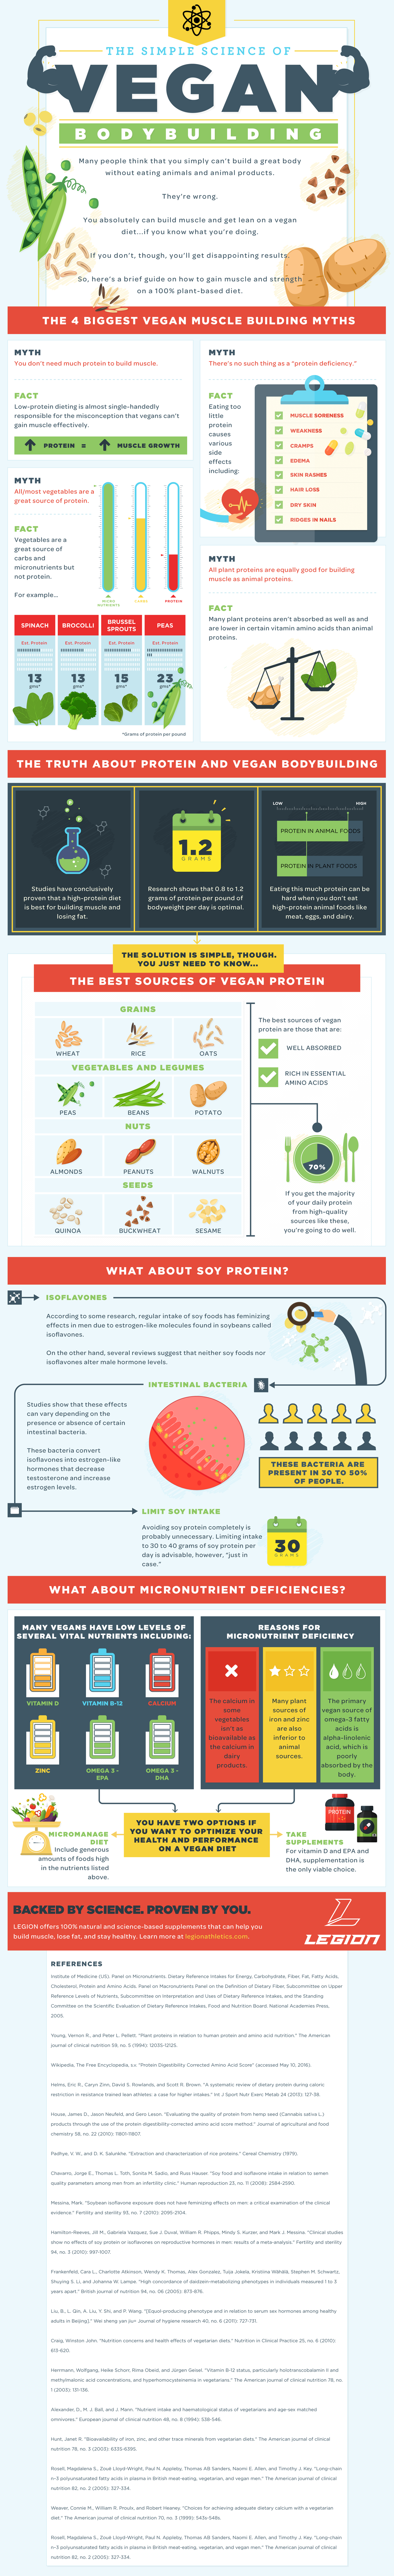 [INFOGRAPHIC] The Simple Science of Vegan Bodybuilding   In this one we talk about the science of vegan bodybuilding and why it's simply NOT TRUE that you can't build a great physique as a vegan.